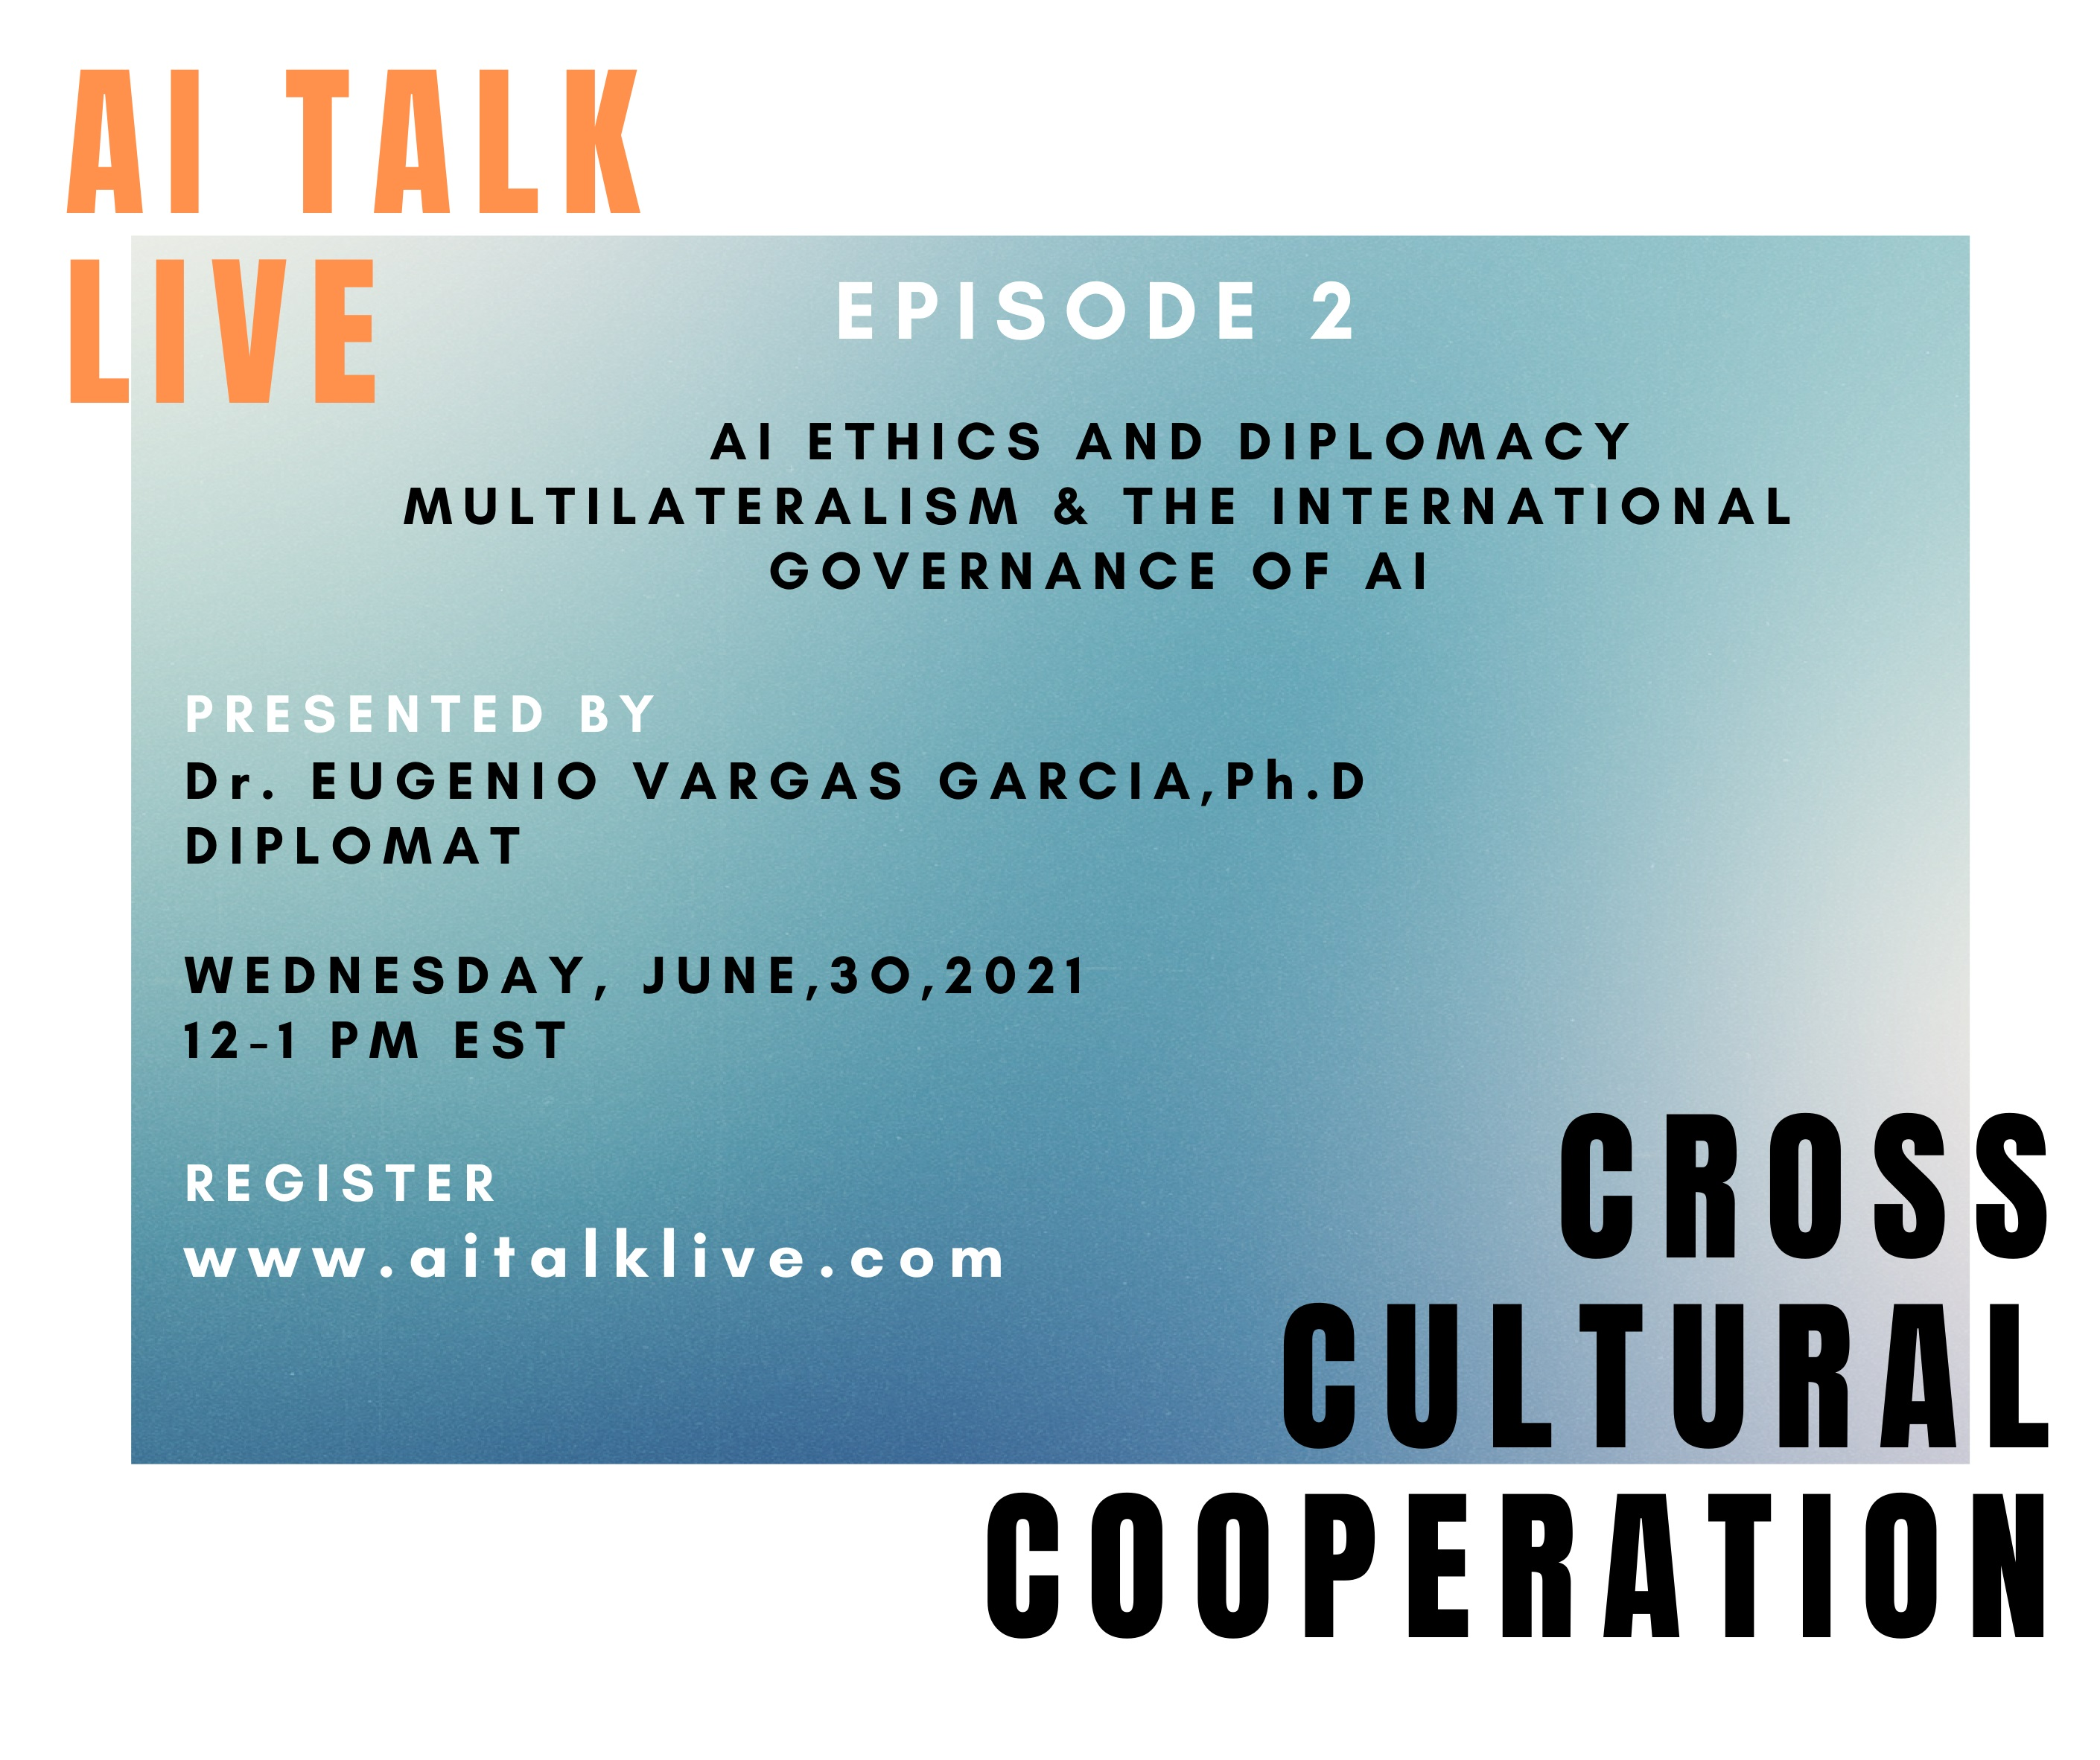 Episode 2: AI Ethics and Diplomacy - Multilateralism & The International Governance of AI